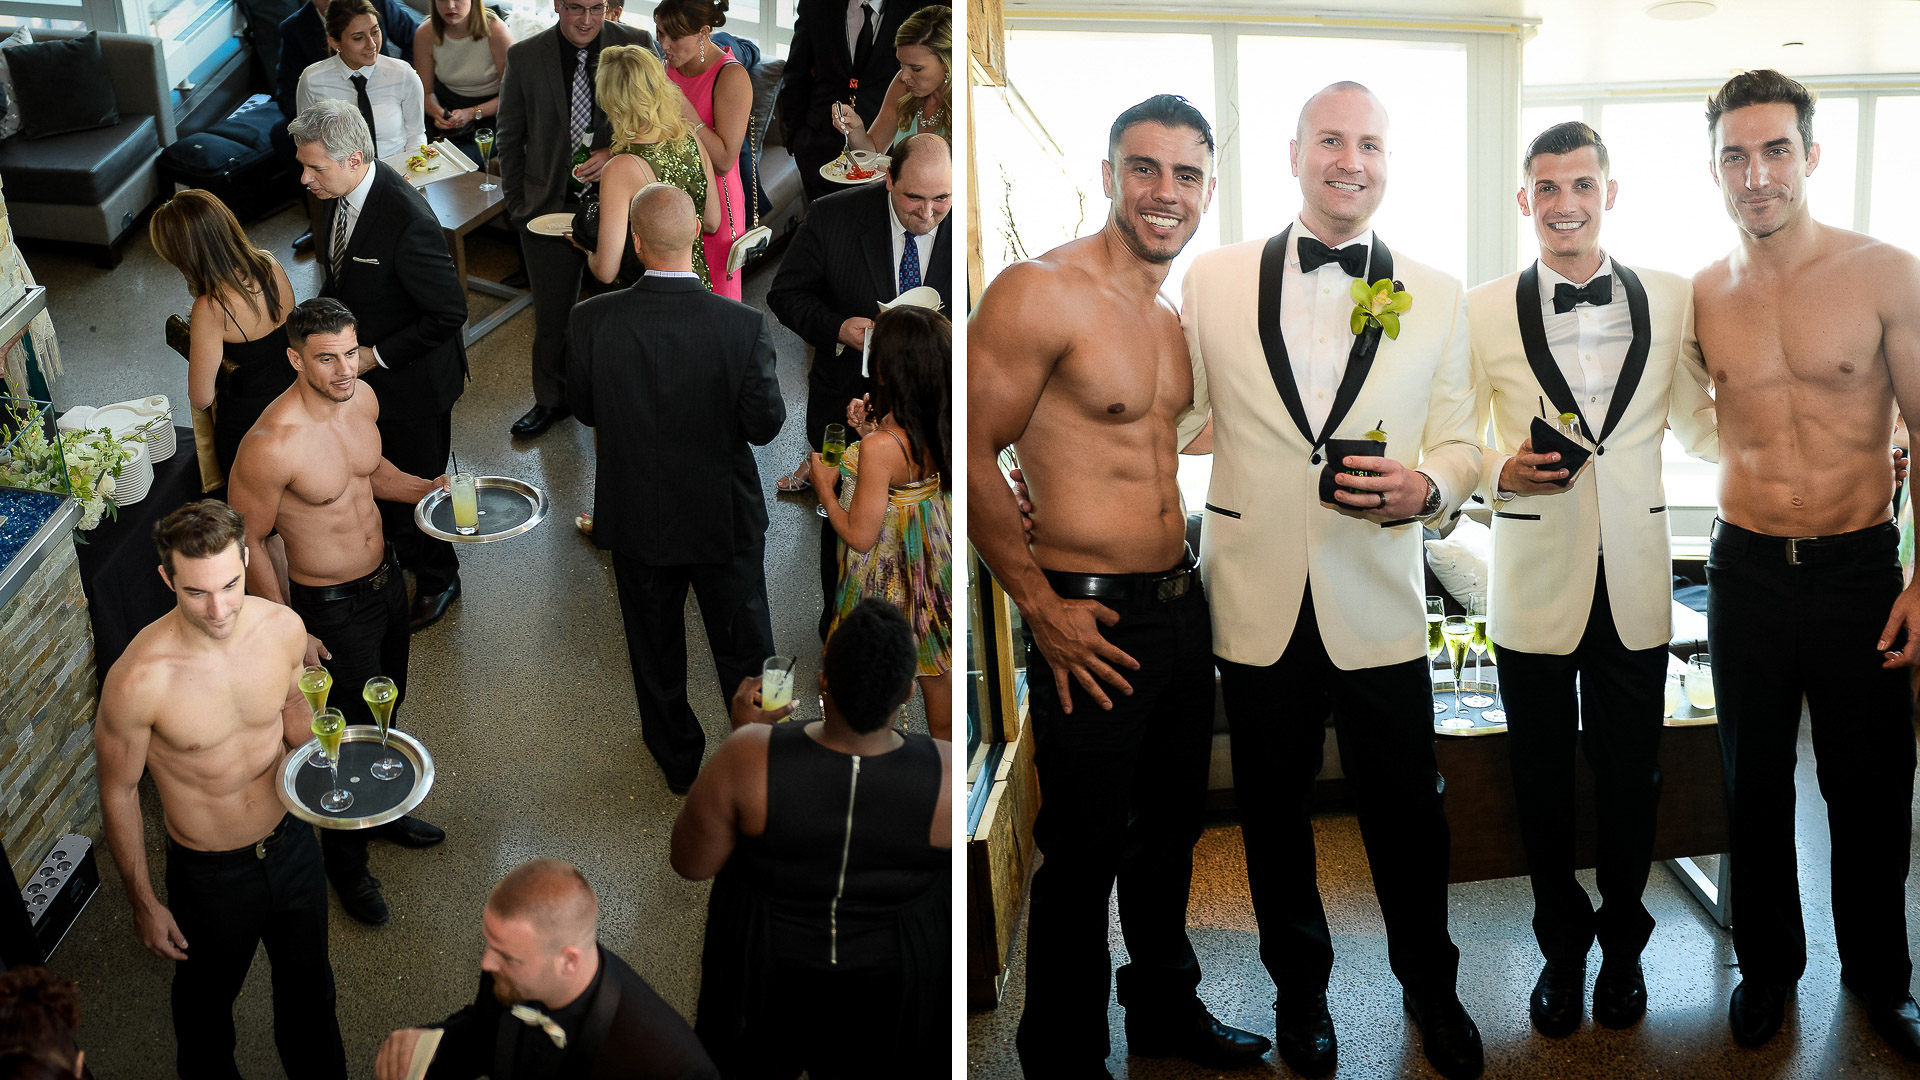 same-sex-wedding-at-ritz-carlton-42-white-plains-ny-16